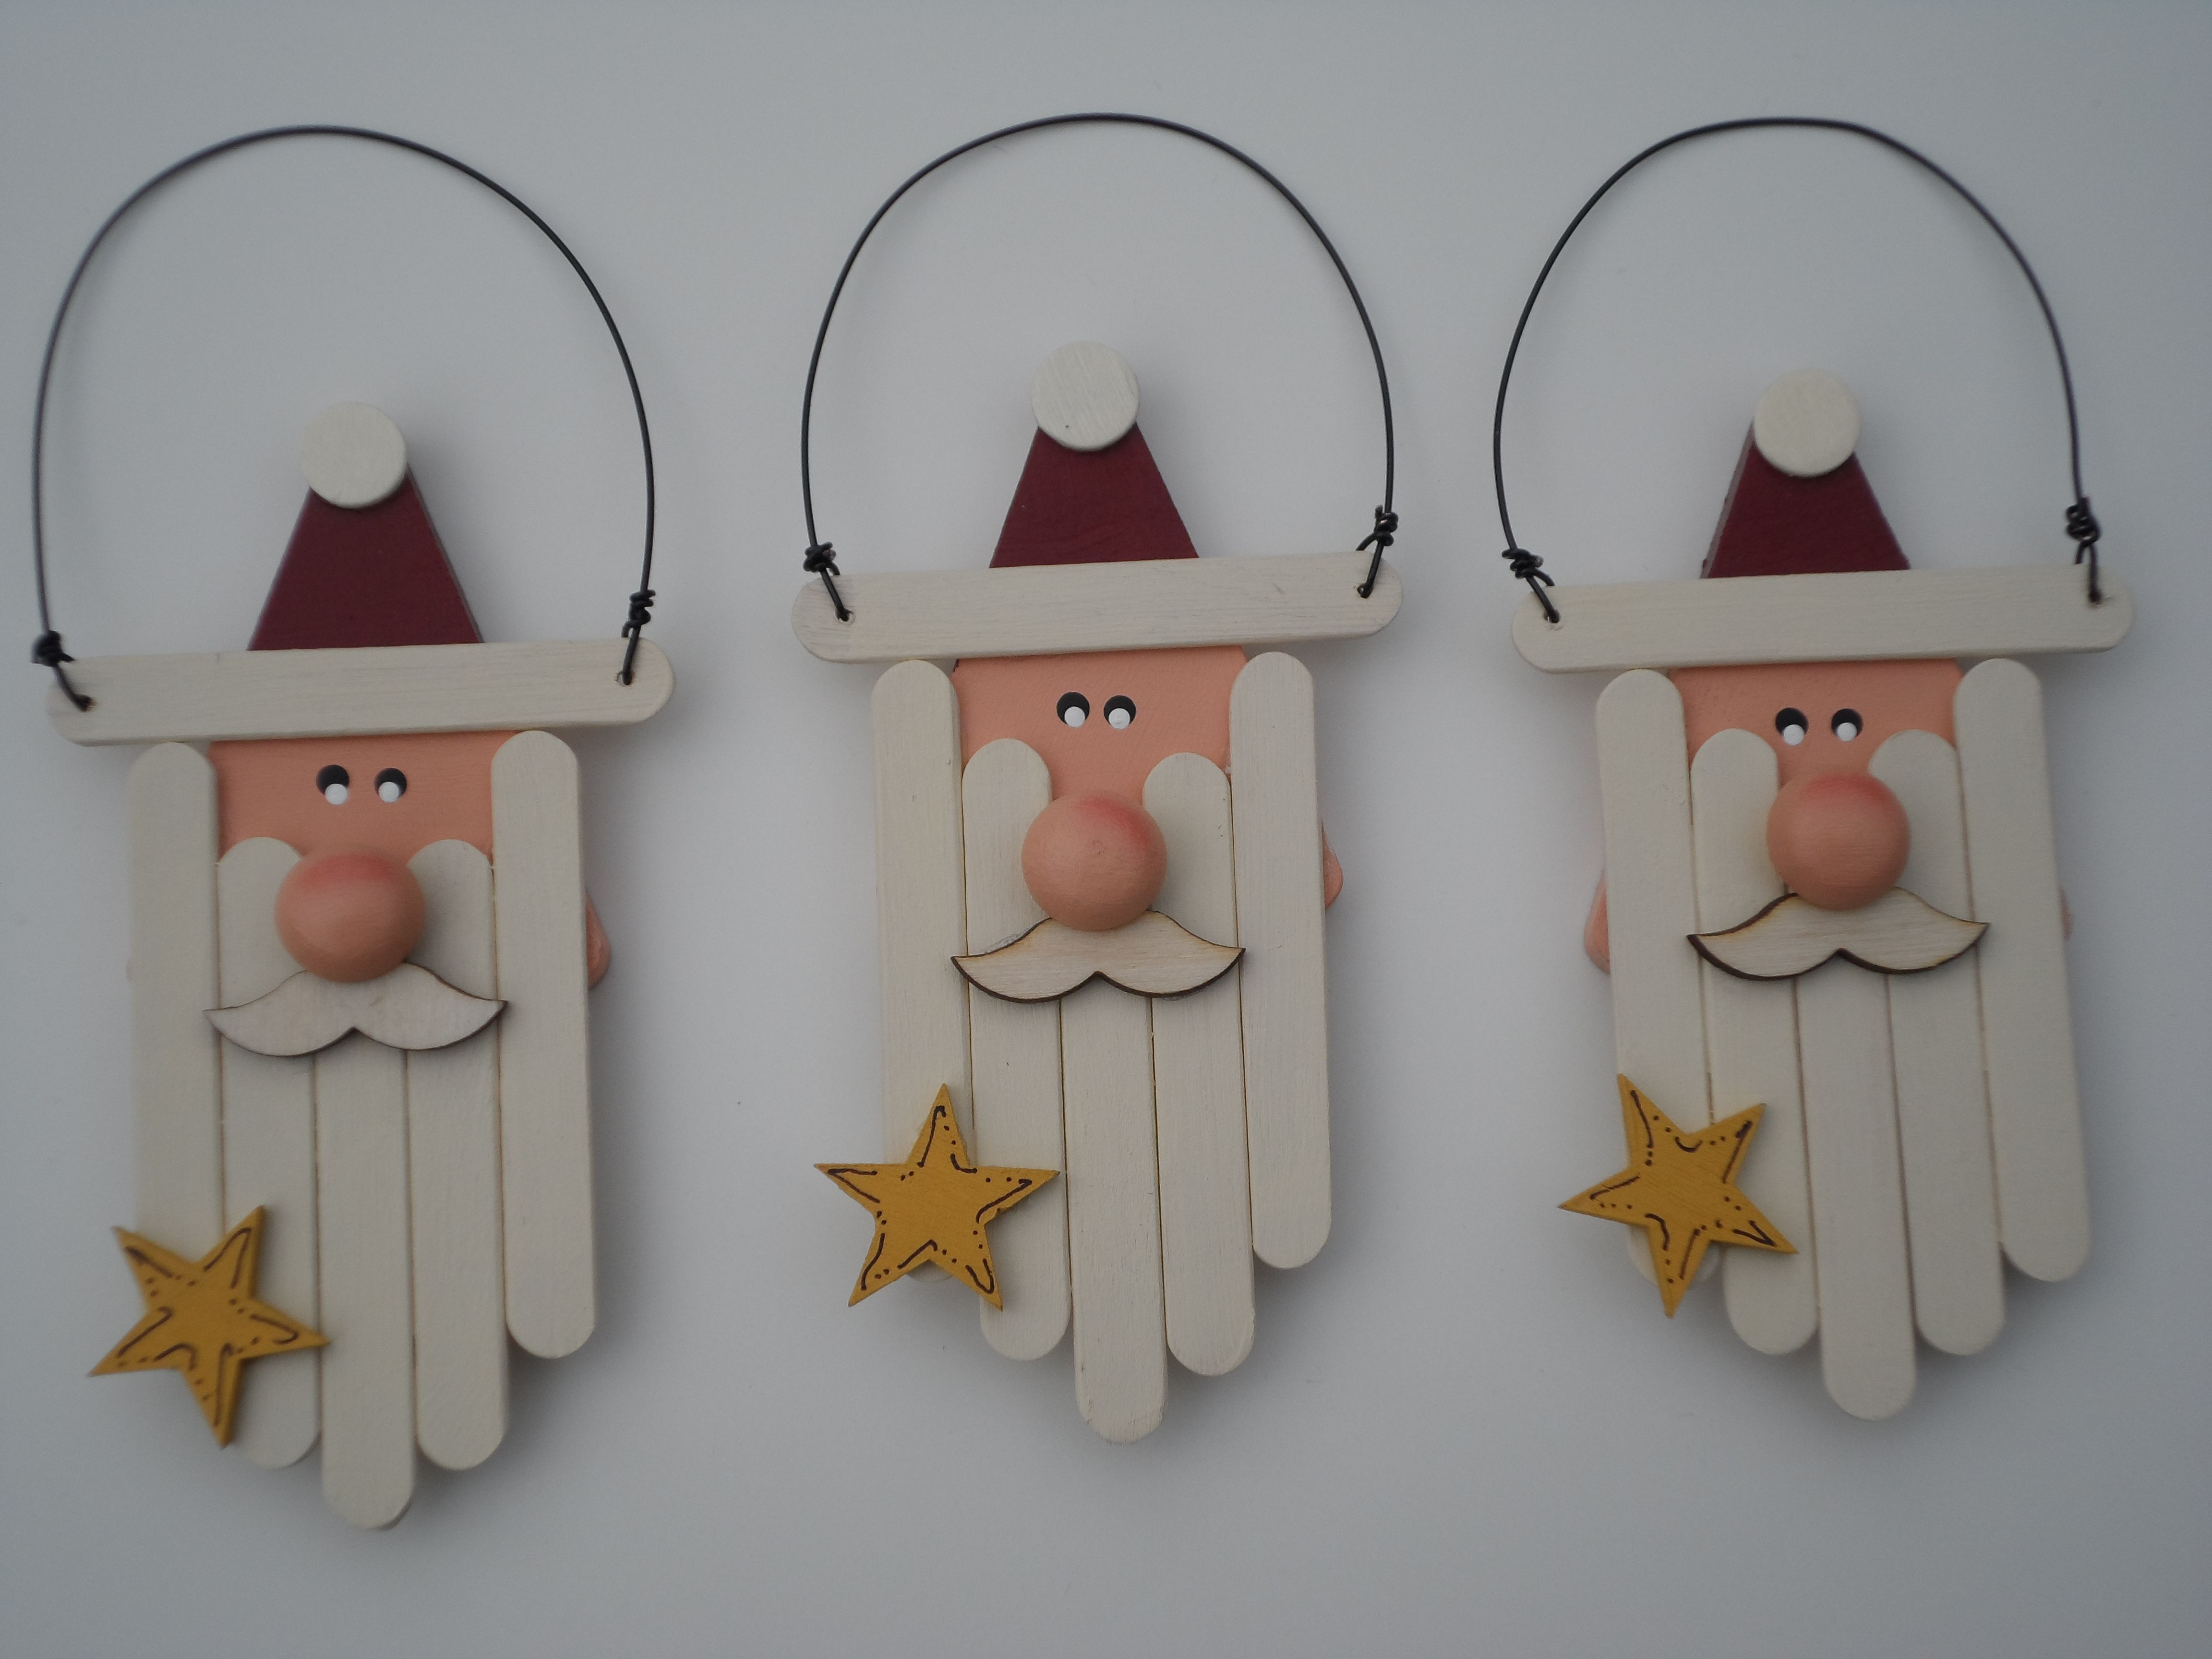 Handmade Christmas Ornaments - Popsicle Stick Sleds | Vignettes ...